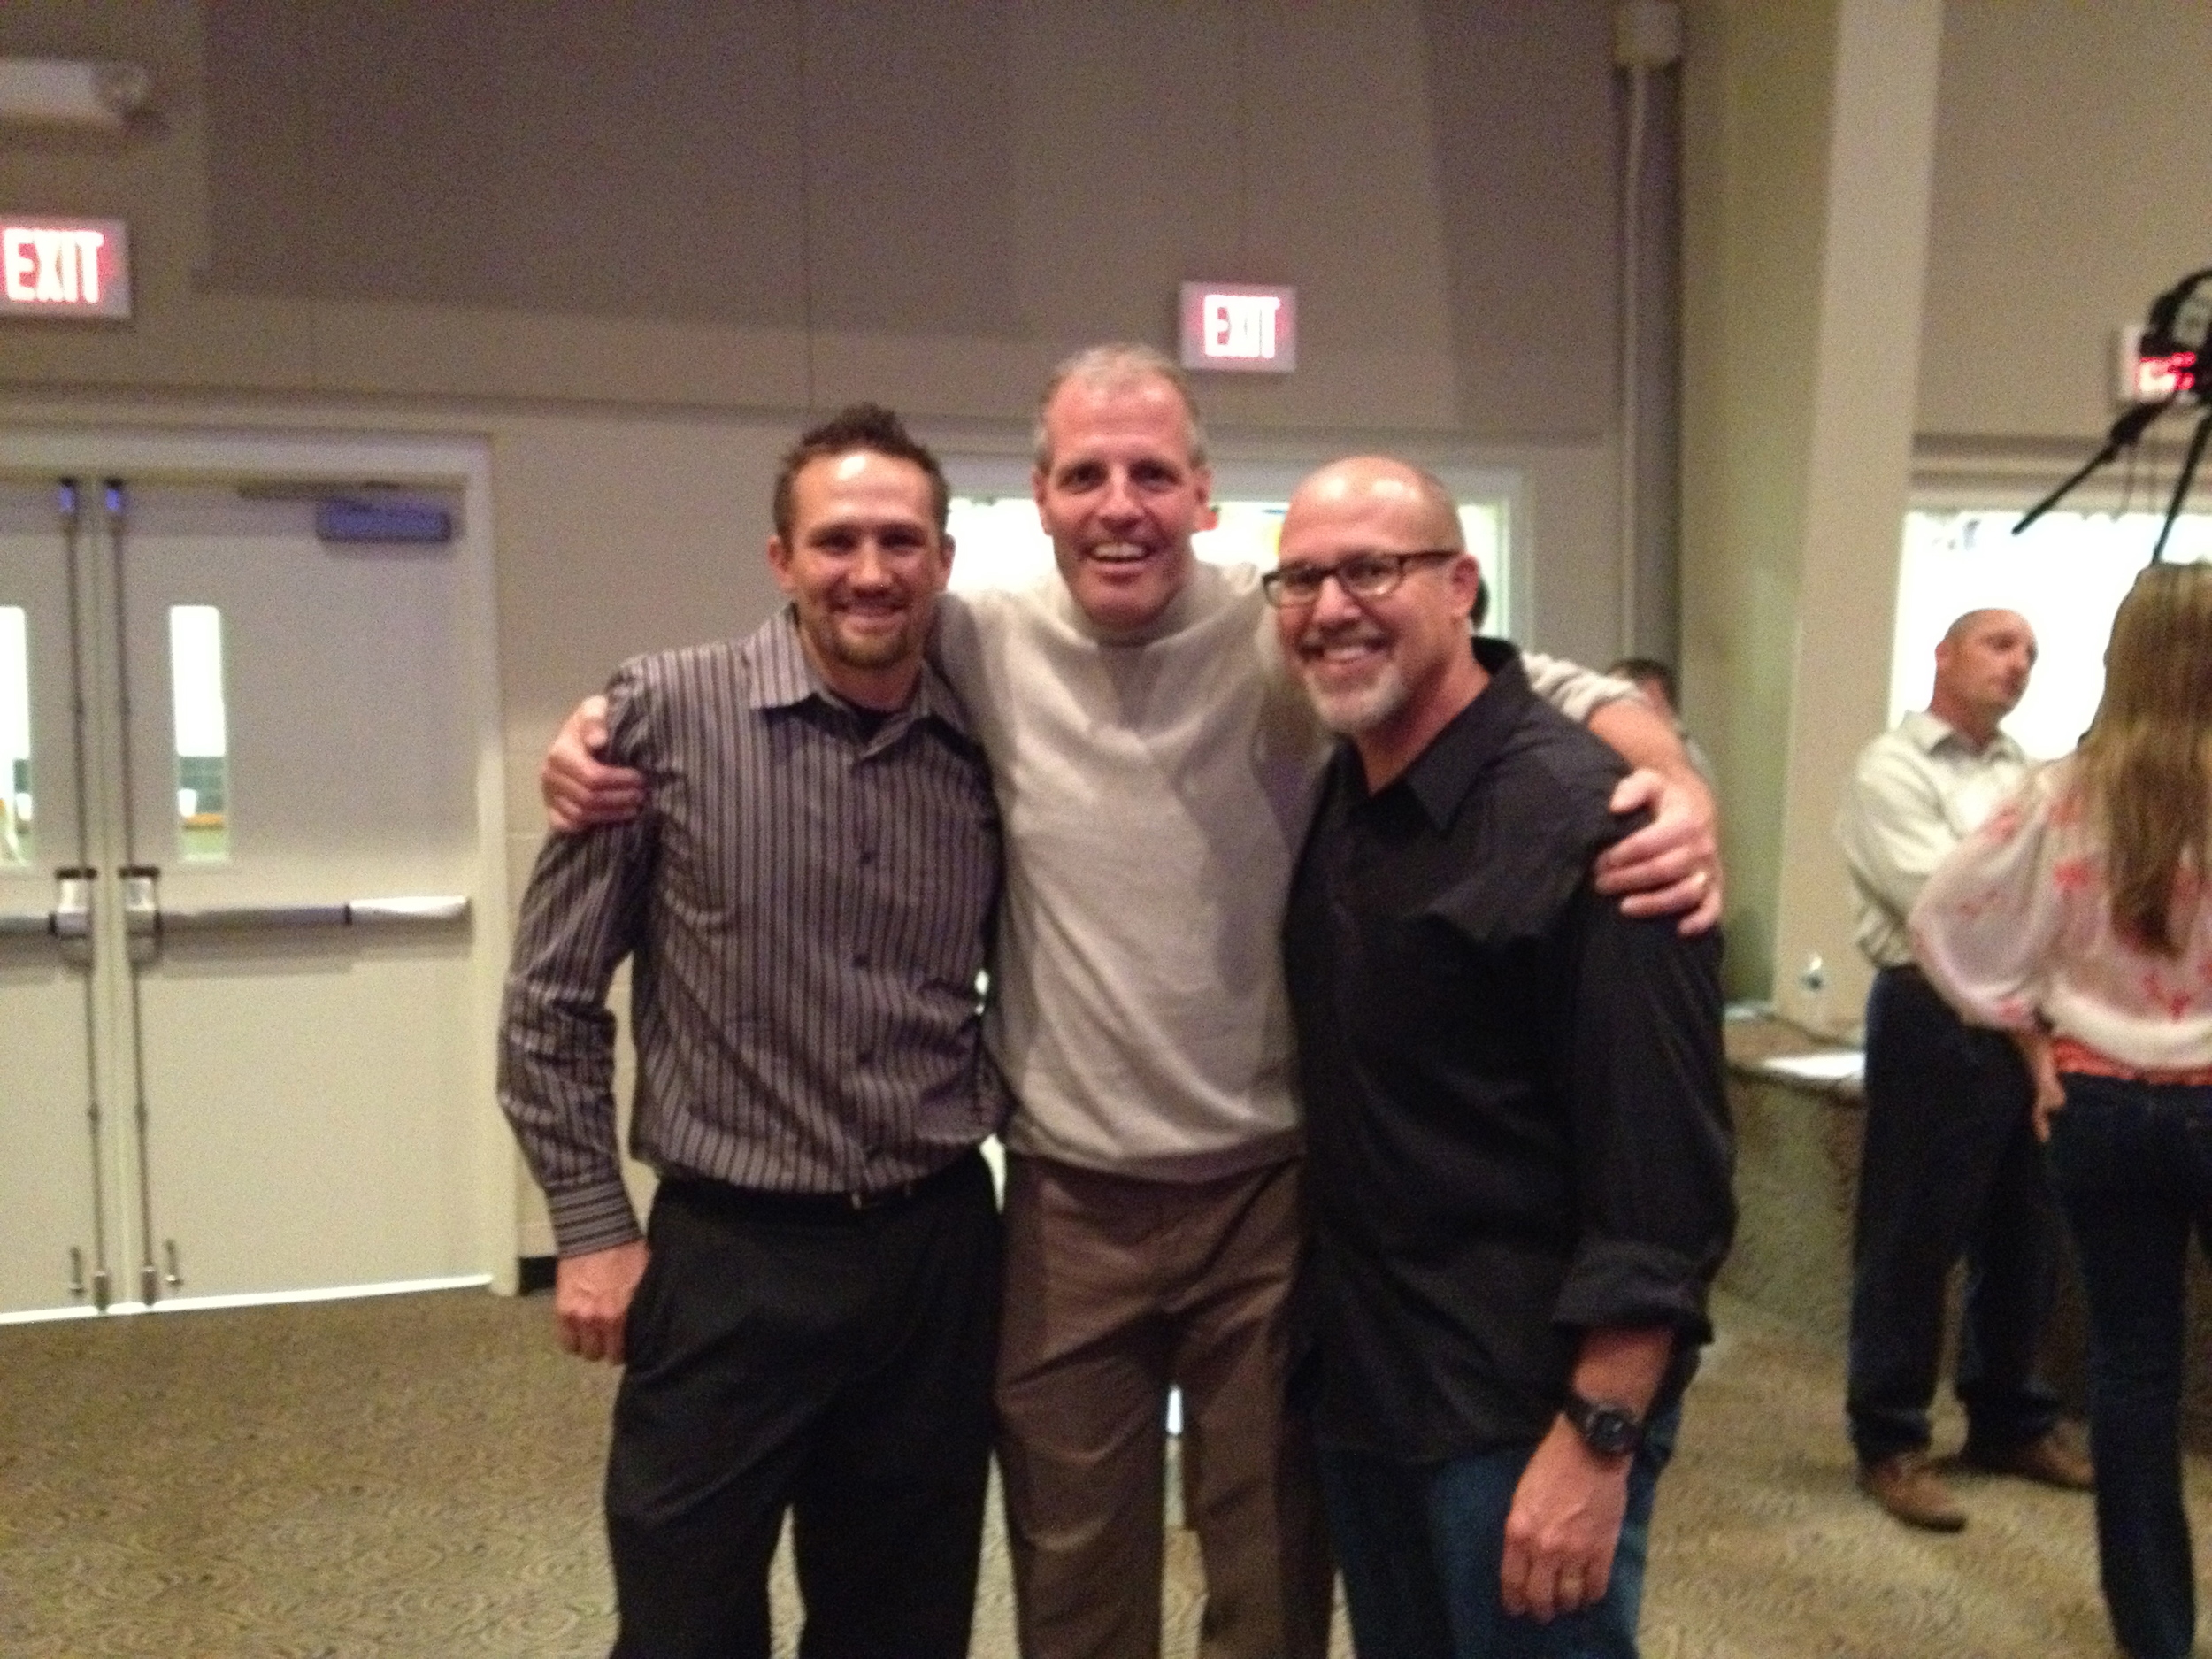 Nate, Michael, and me...the pastor and my good buddy, Jeff Tarbox, was across the room